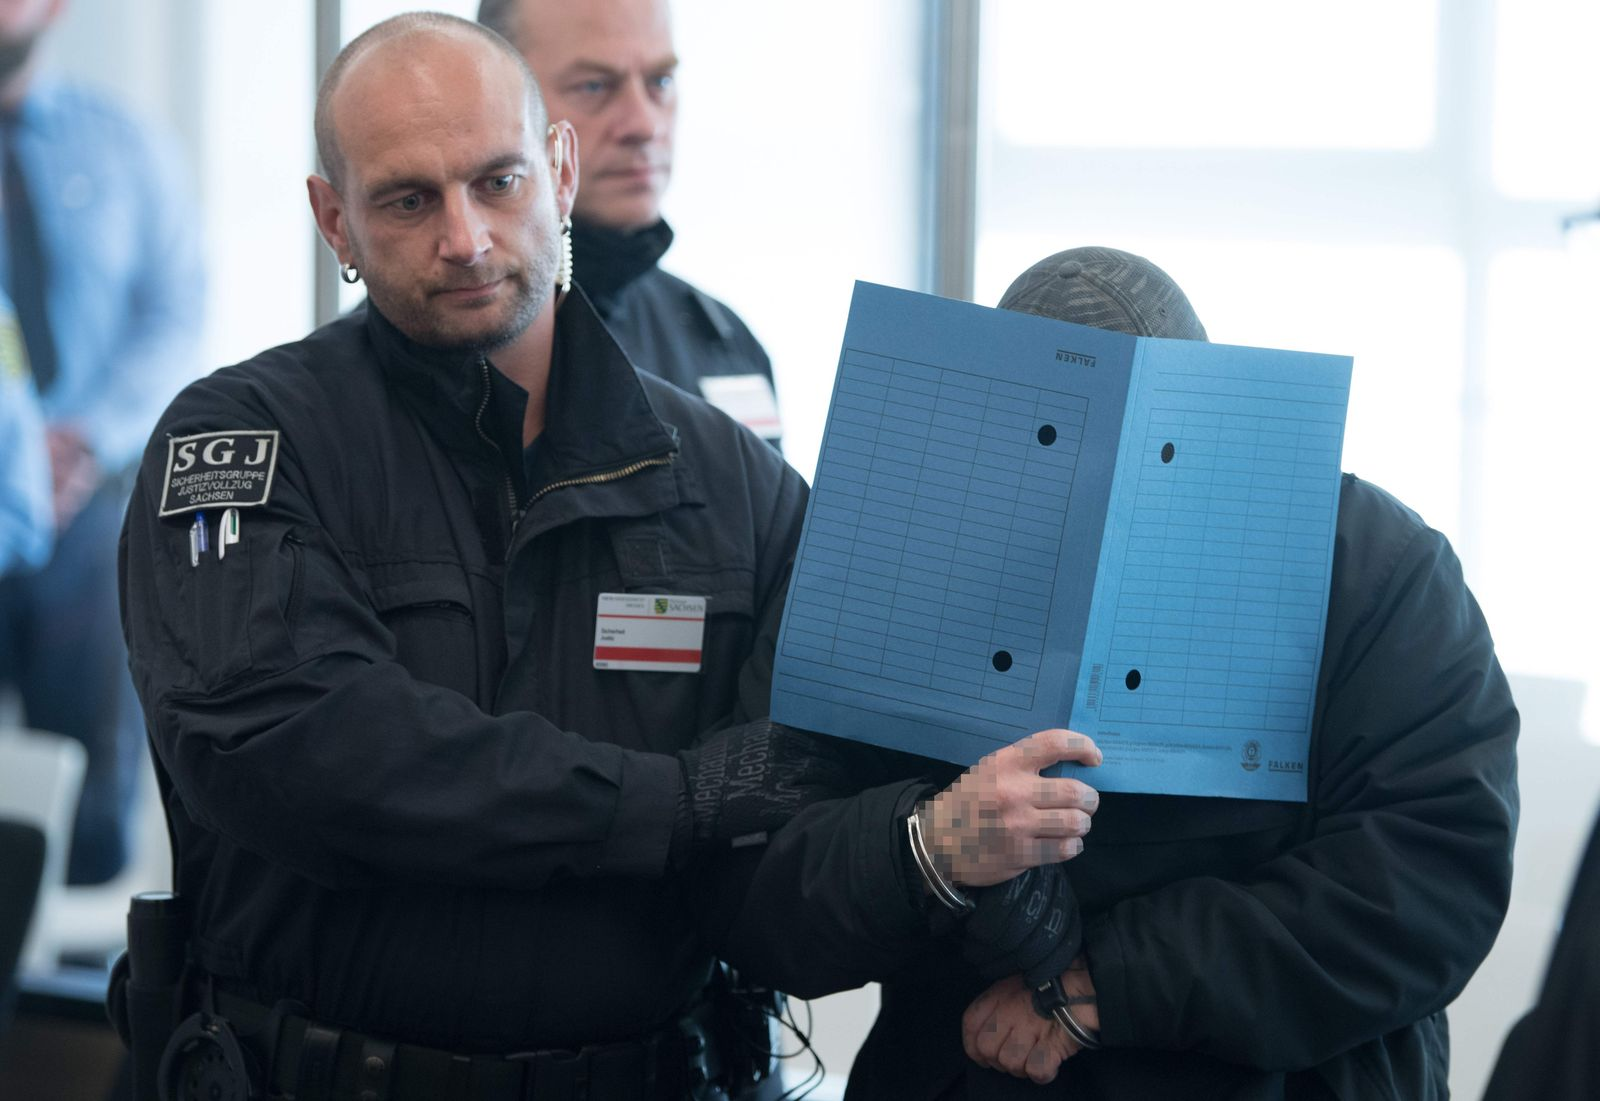 FILES-GERMANY-FARRIGHT-TRIAL-POLITICS